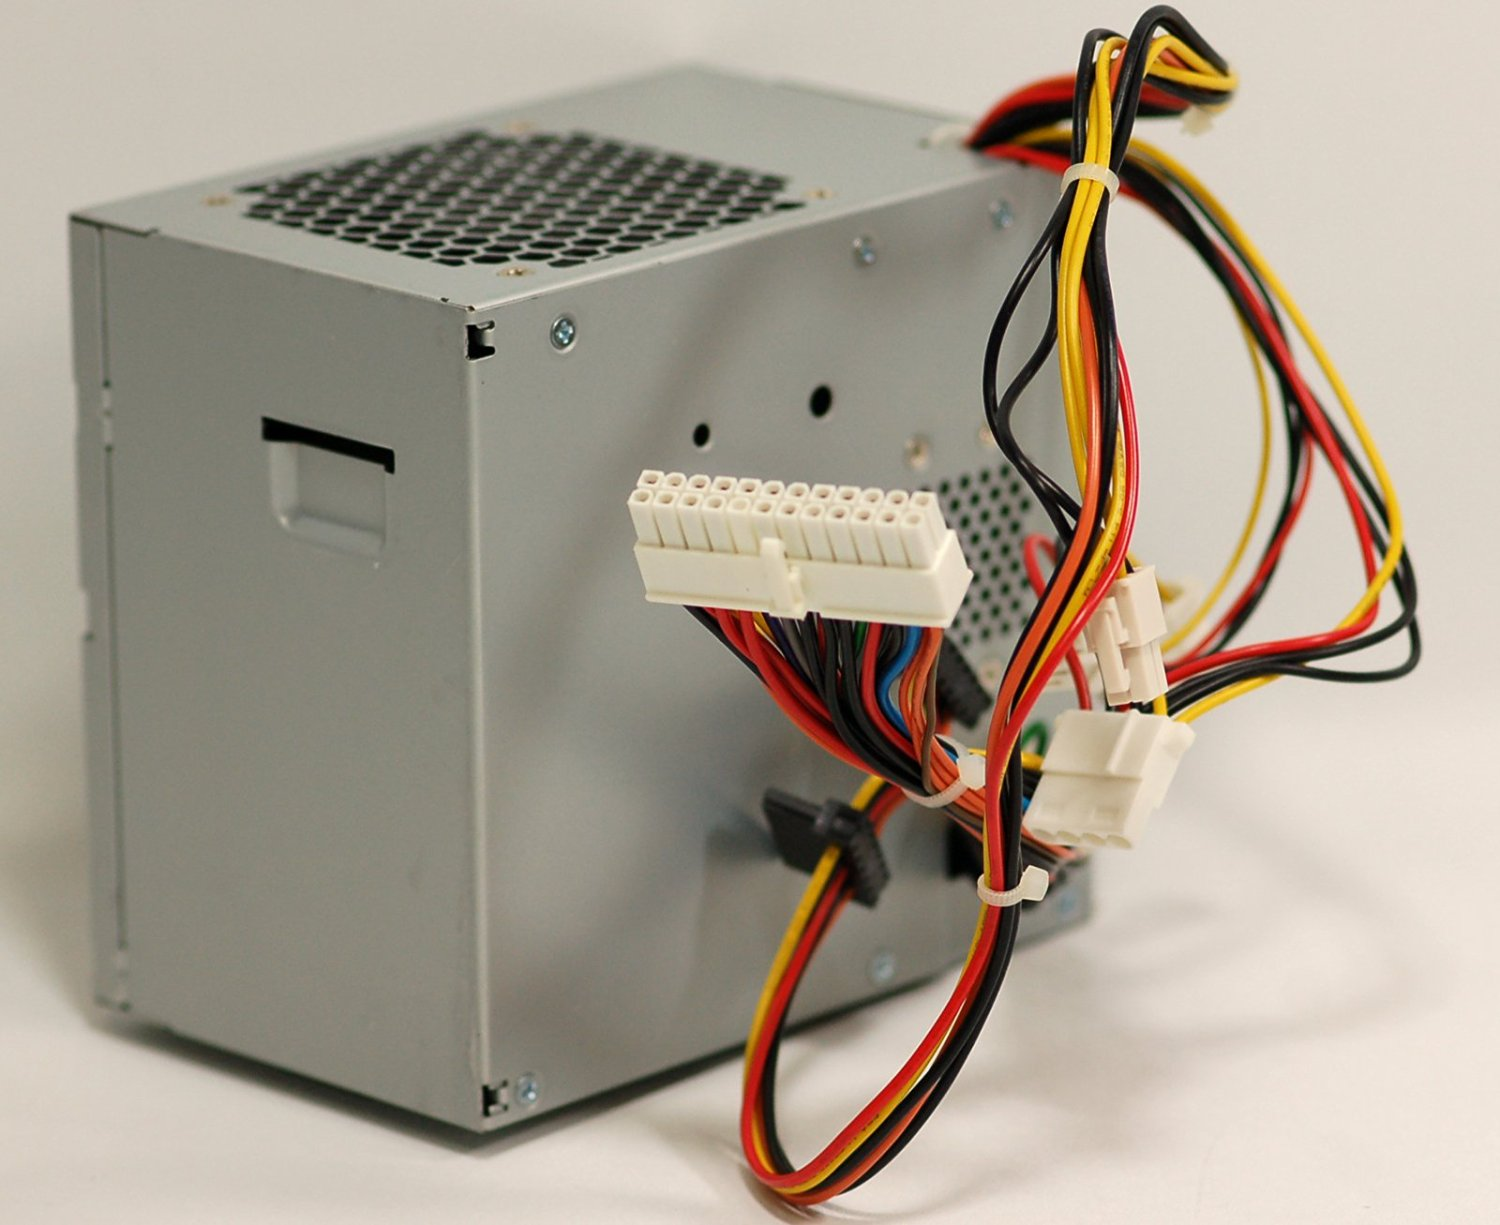 Buy NEW Dell Power Supply Unit PSU DC Switching Dimension E310 3100